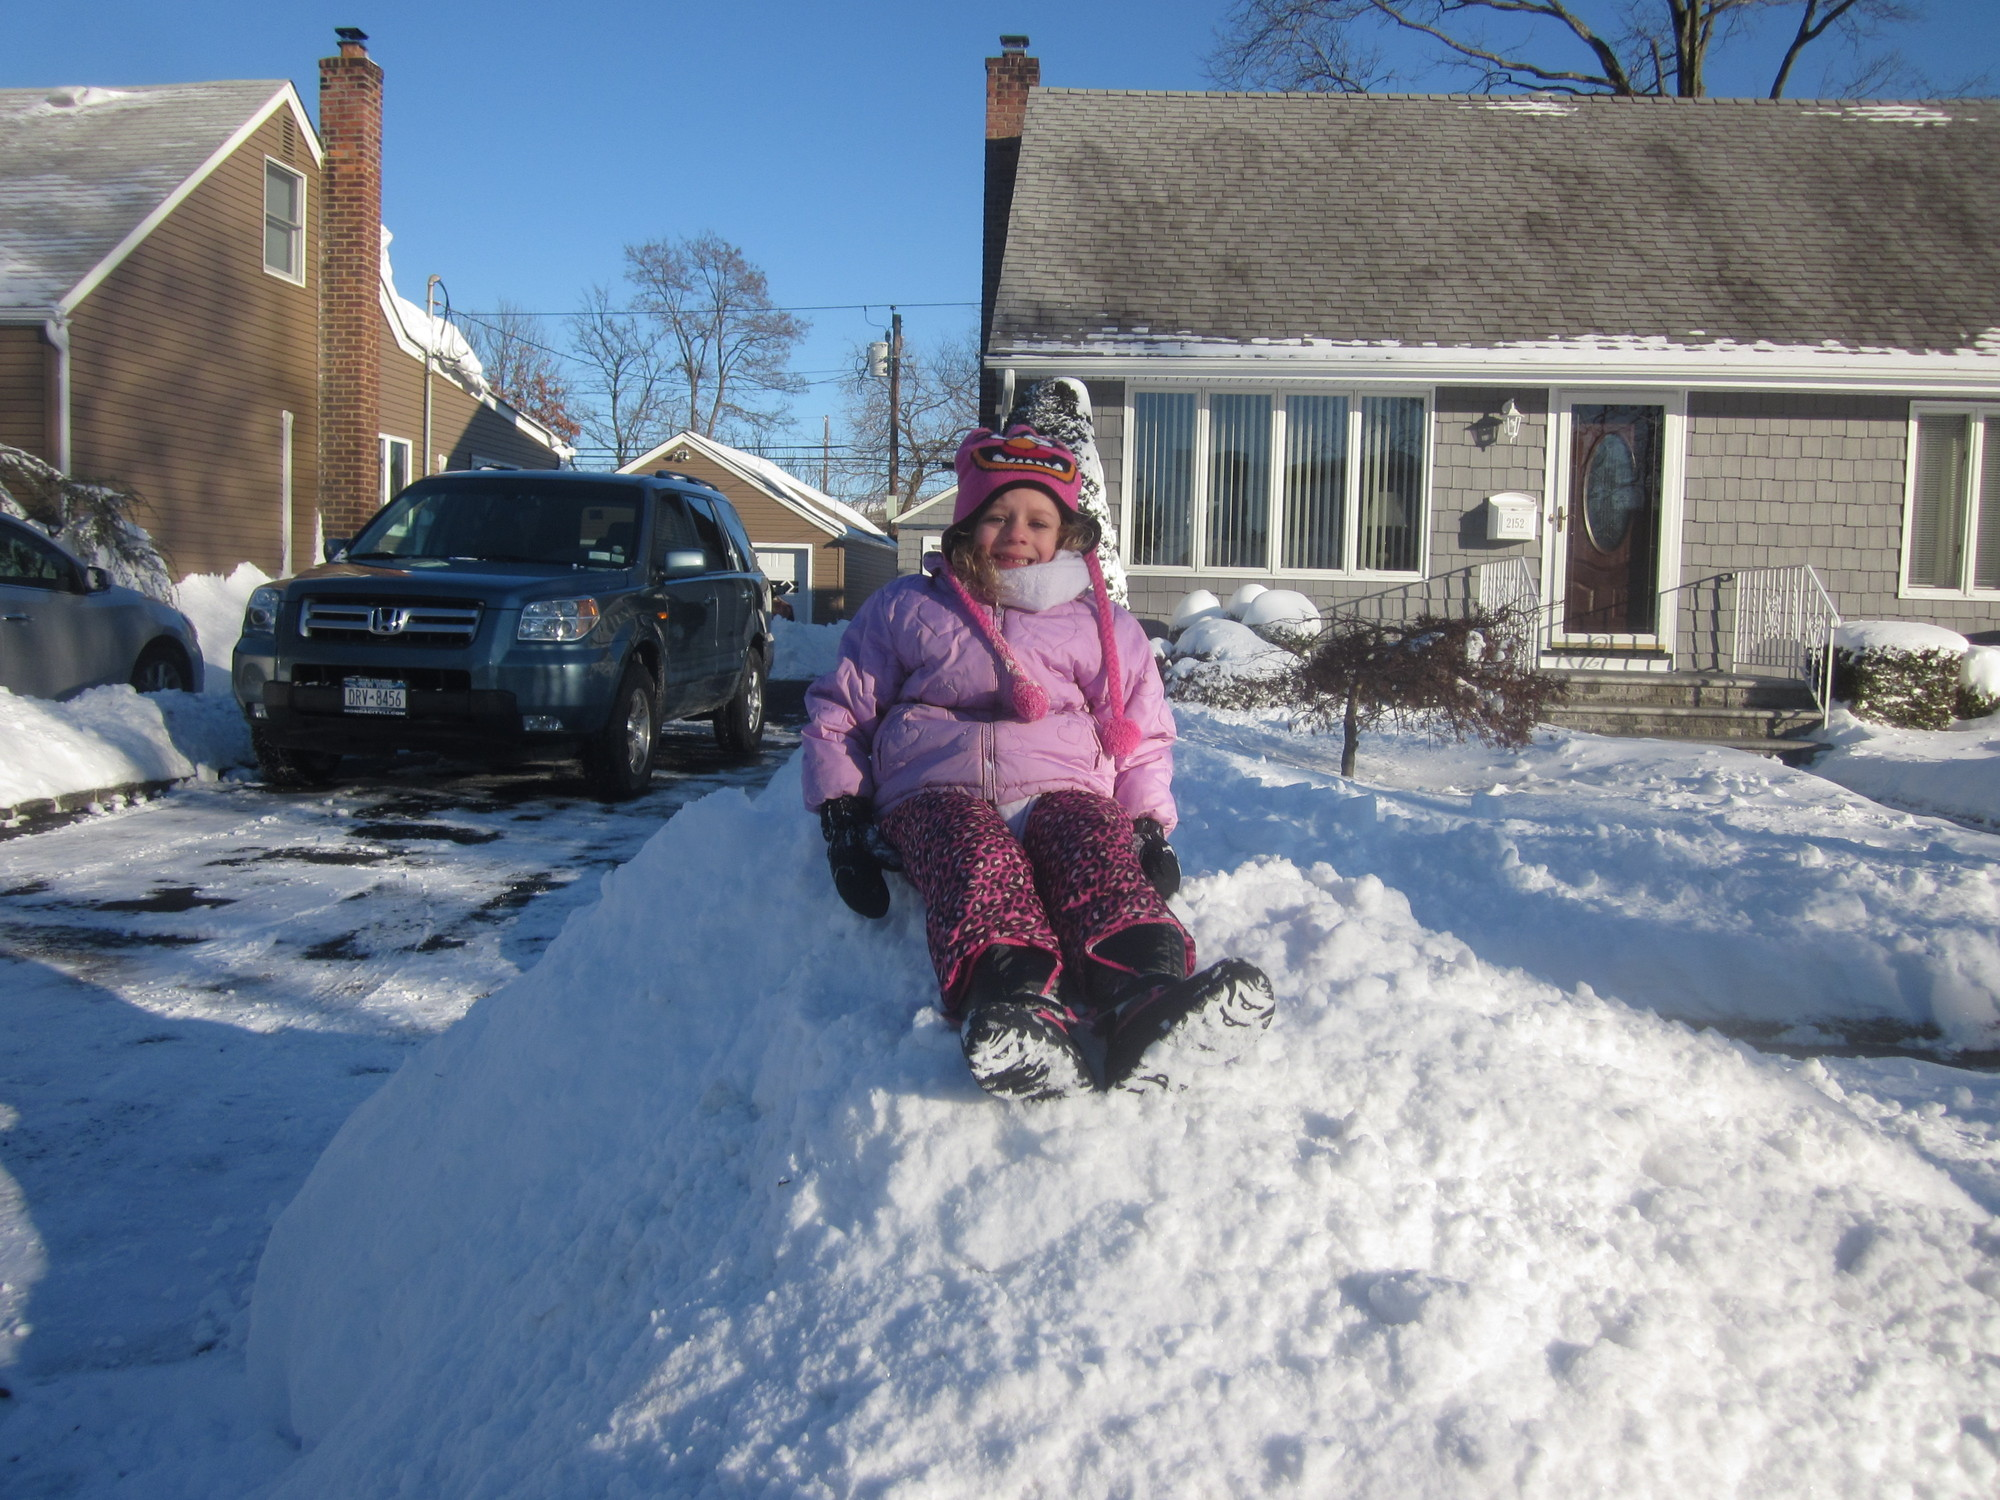 Lila Doyle, 4, said her favorite snow activity is making snow angels.